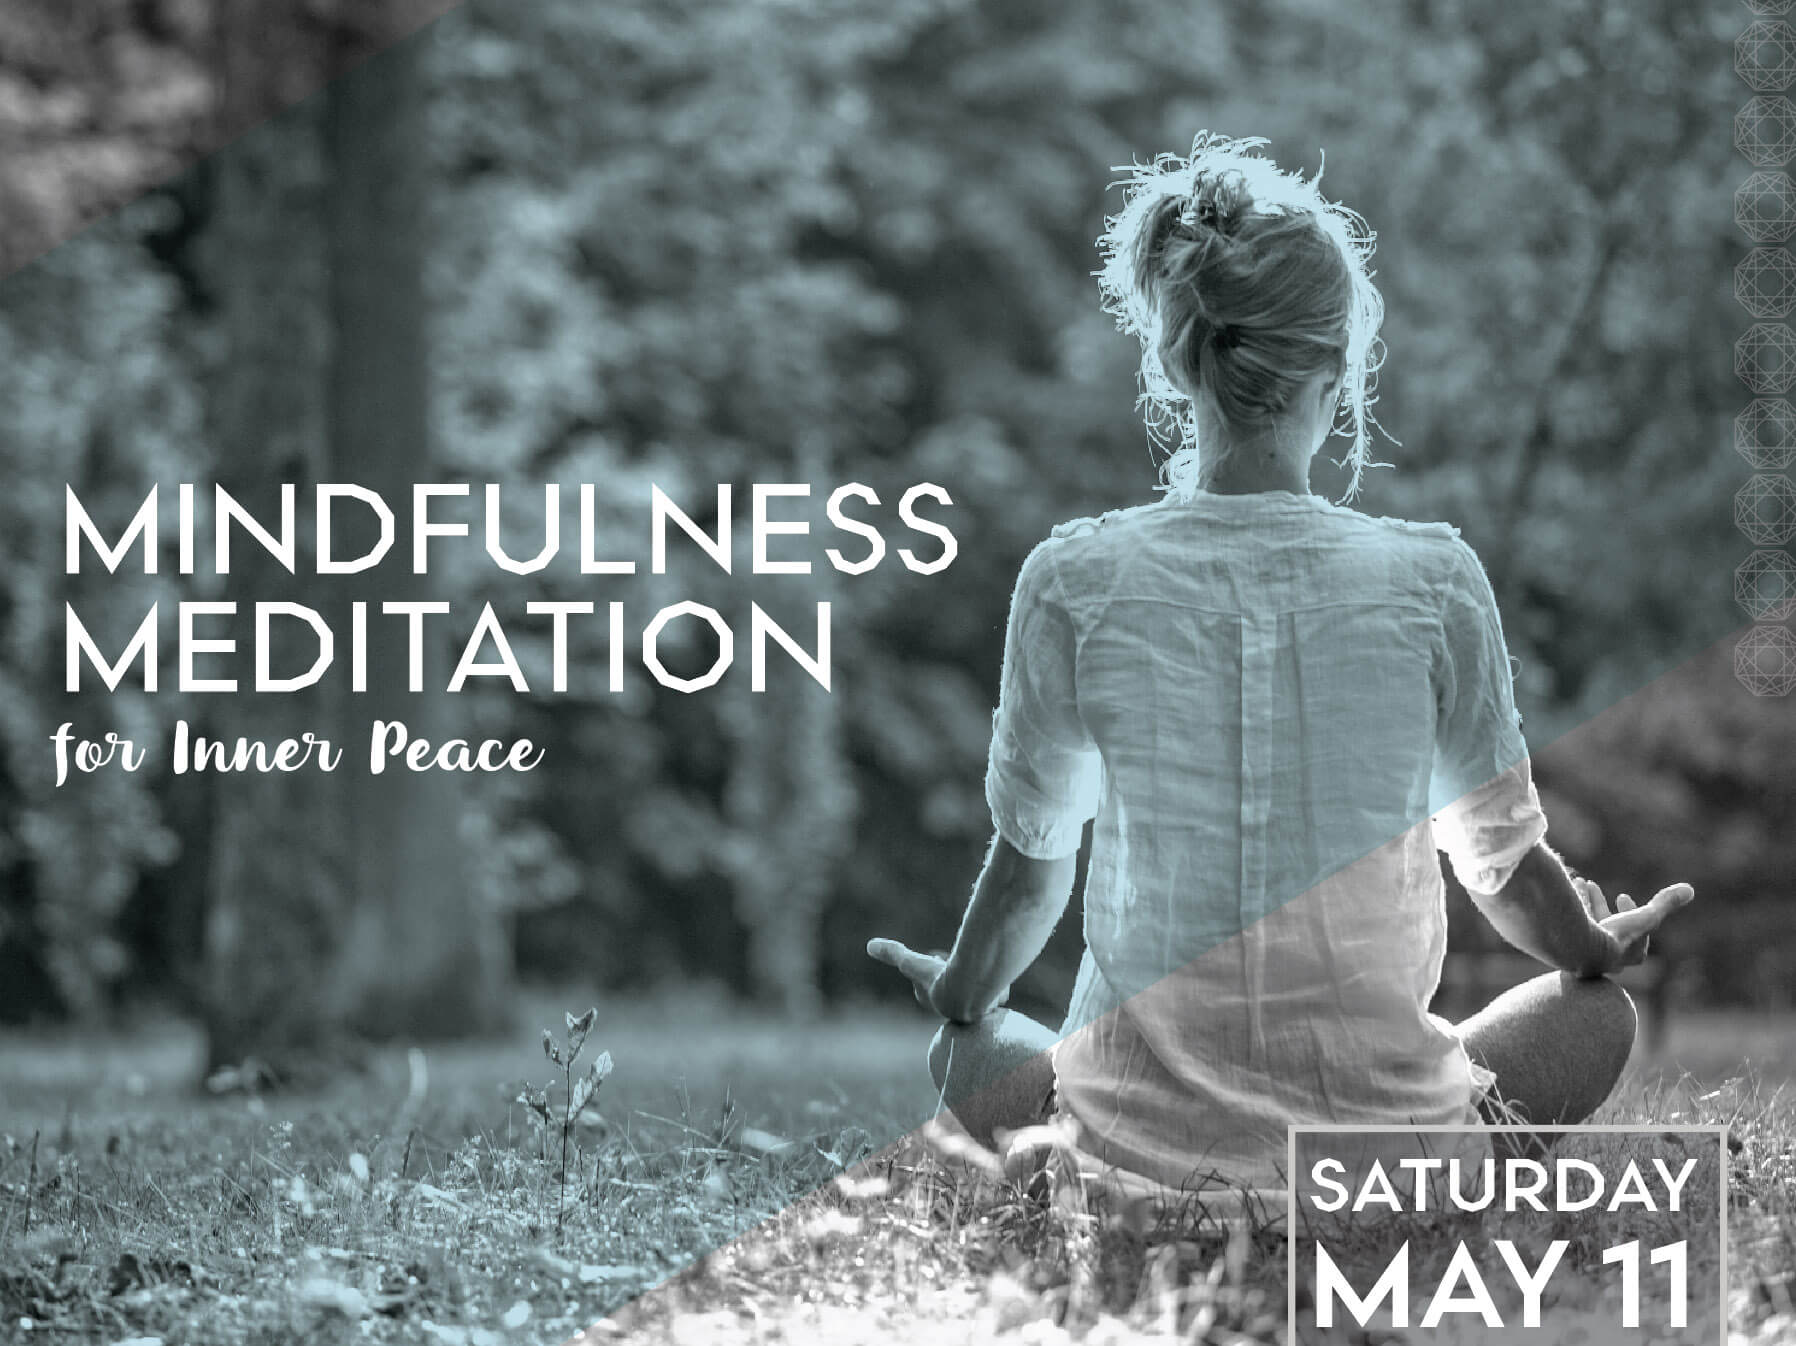 Mindfulness Meditation for Inner Peace